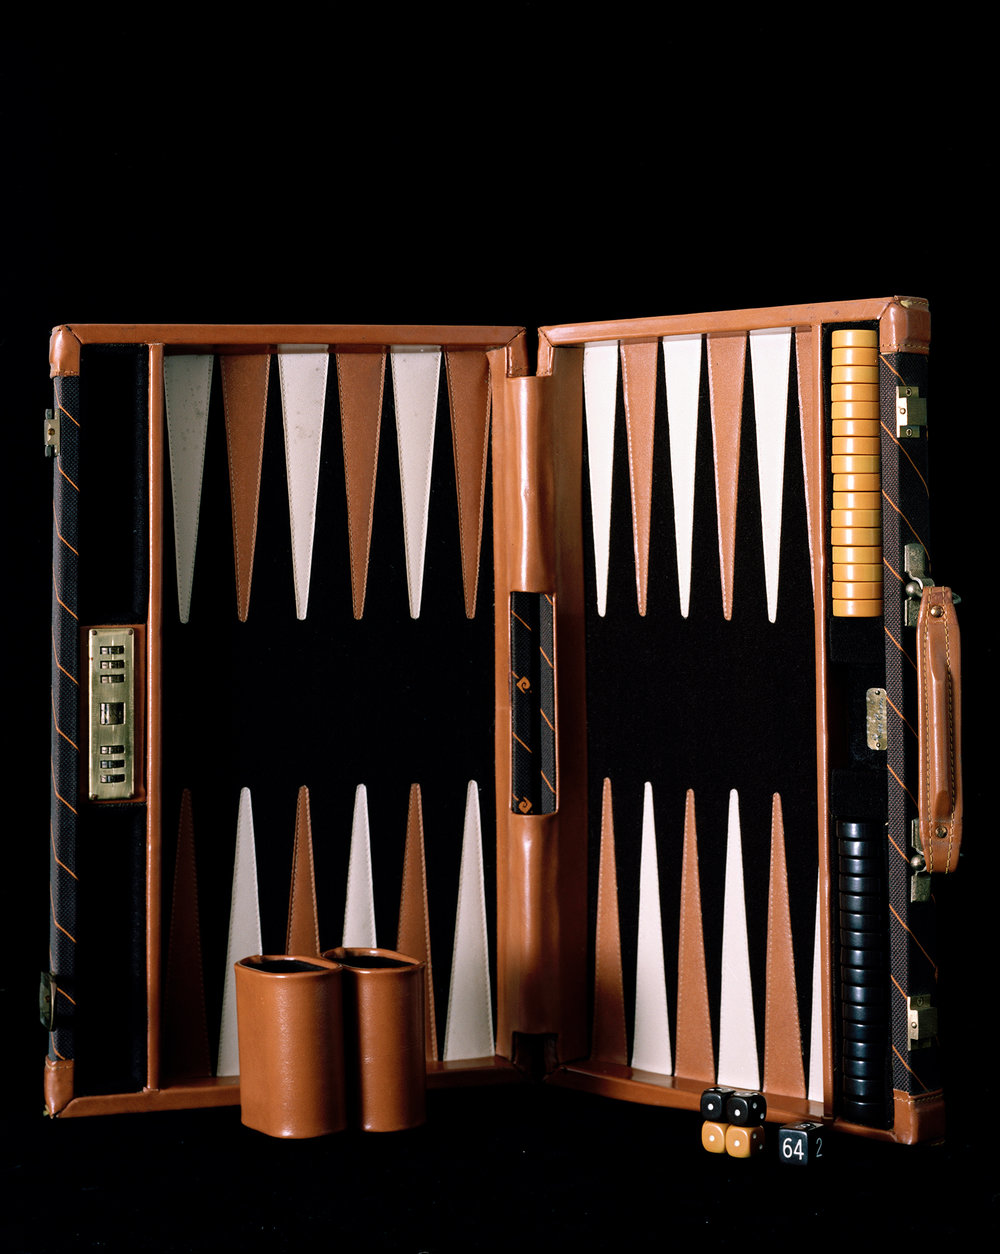 Culture Handbook No. 003 (backgammon set), 2017